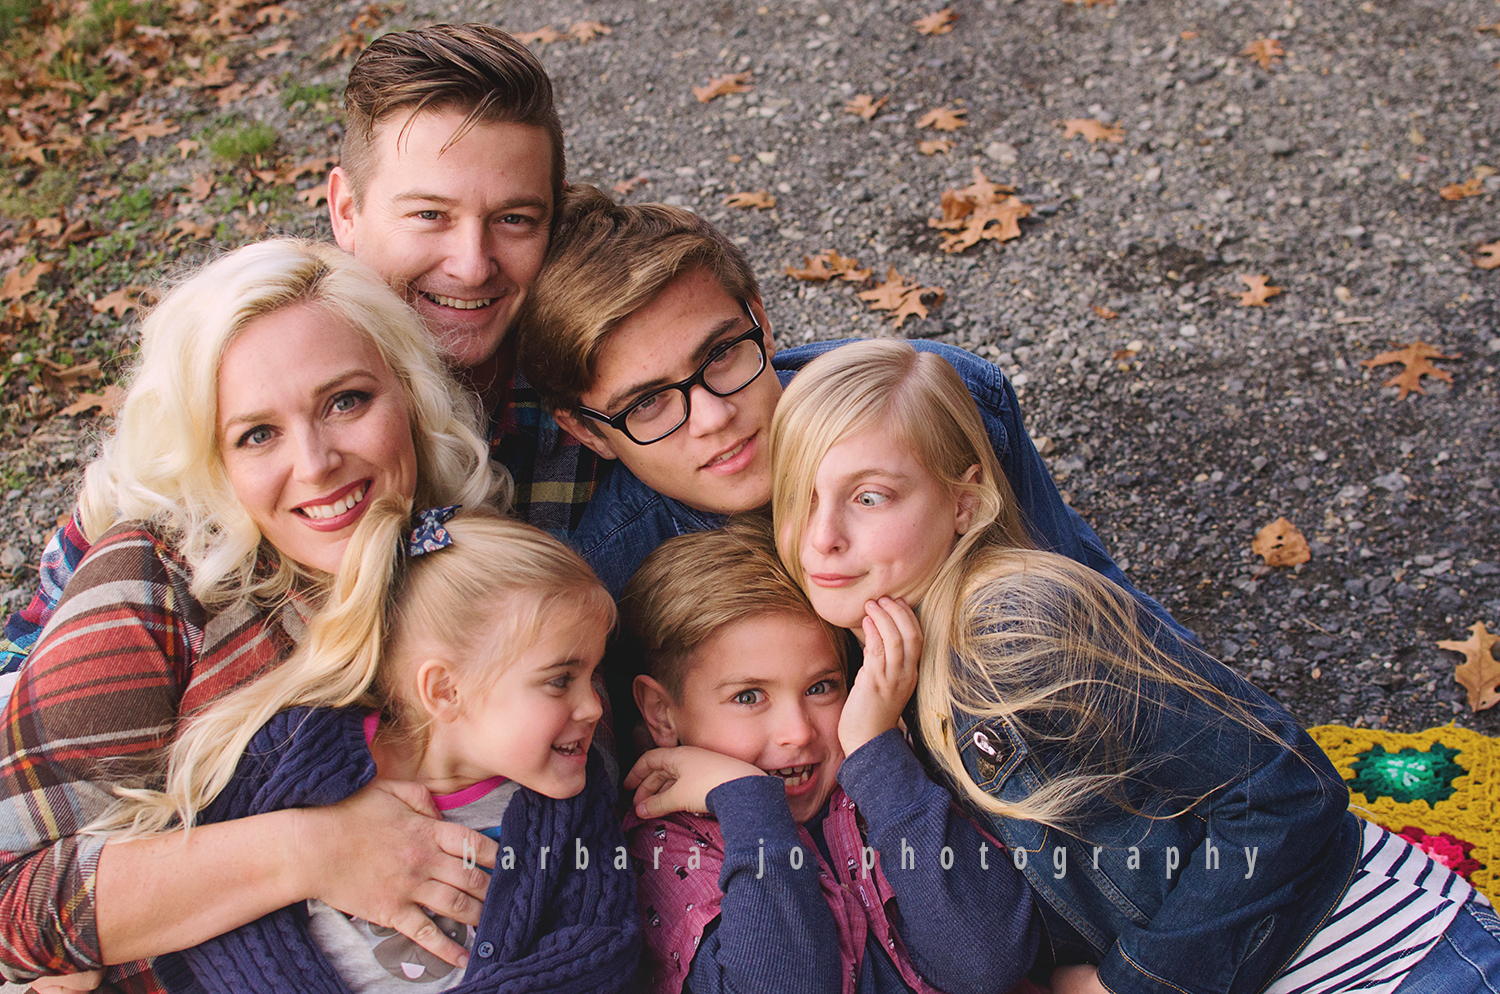 bjp-family-children-photographer-dover-oh-mini-sessions-fall-autumn-fantin1.png